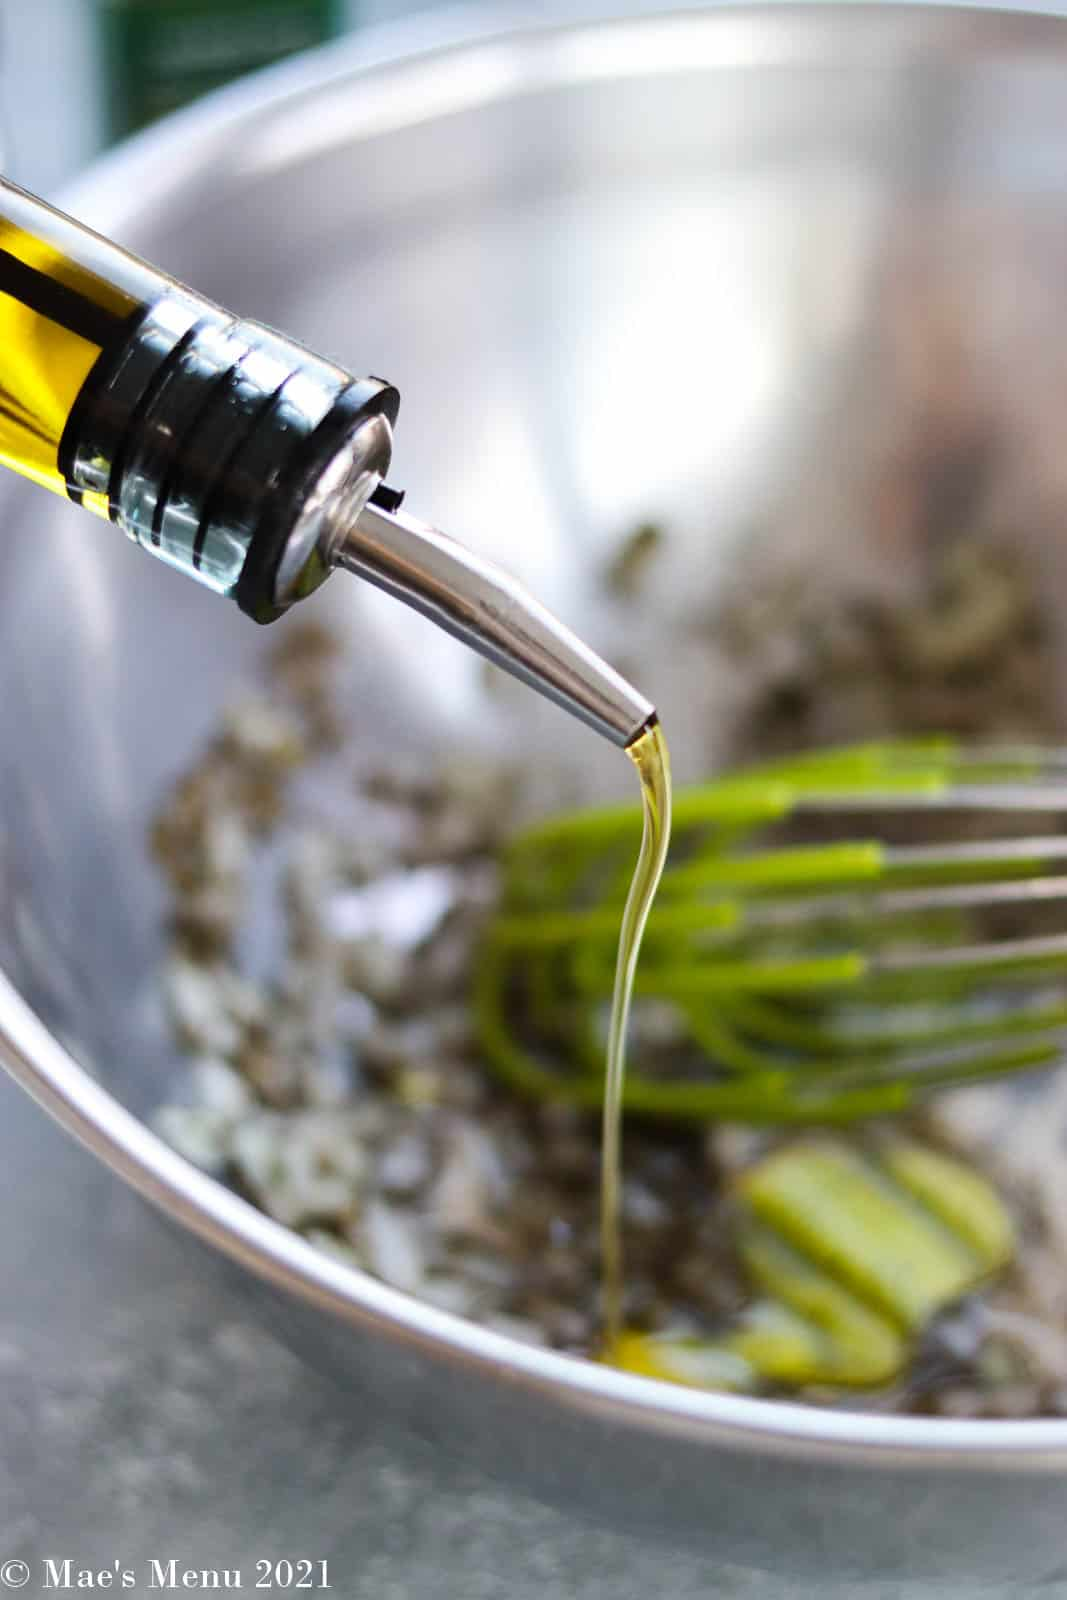 Whisking the olive oil into the salad dressing